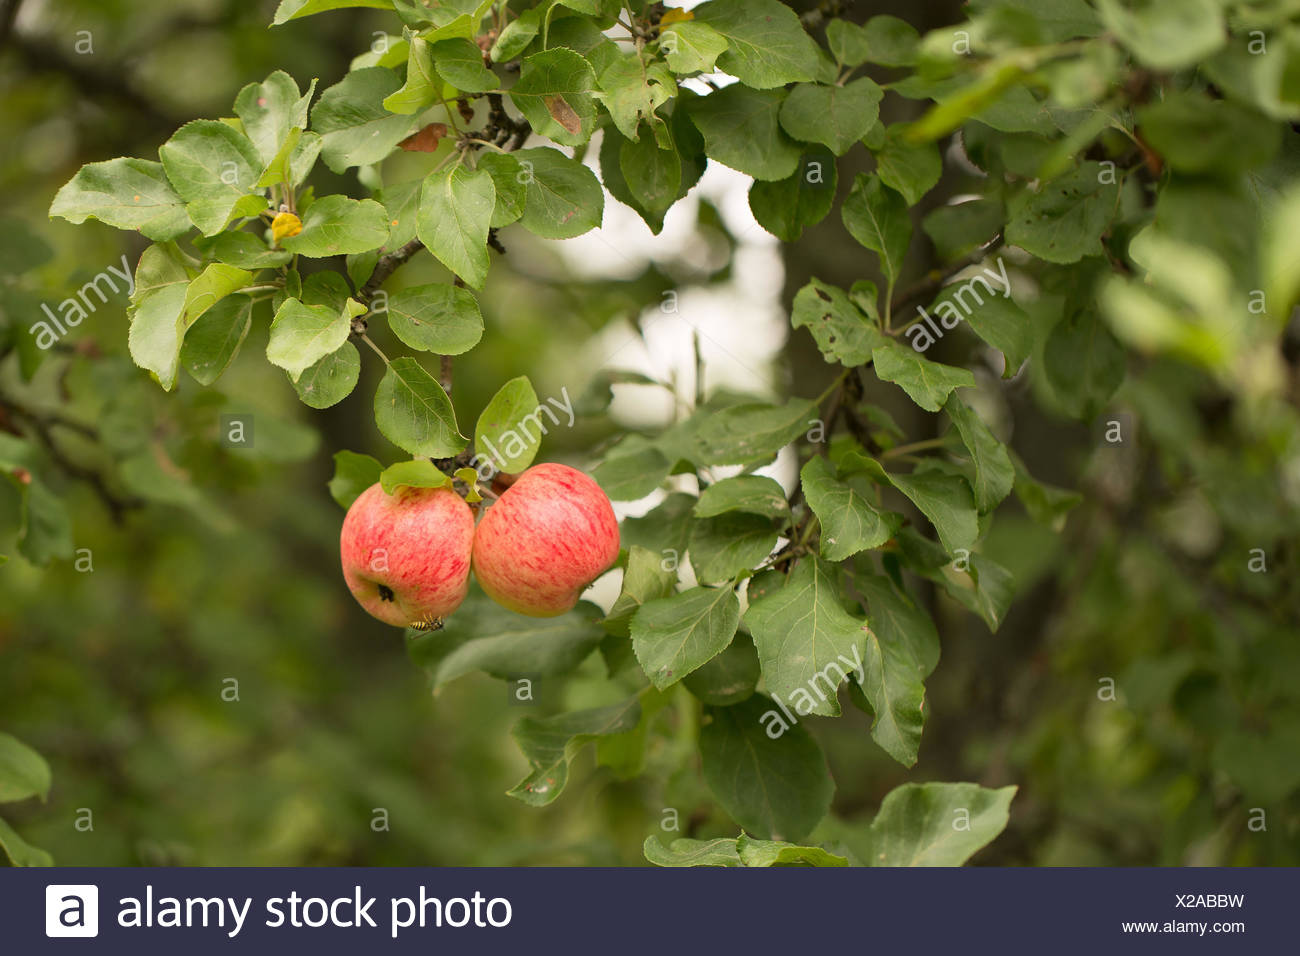 2 apples,2 objects,4-season autumn,agriculture,apple tree,apple tree branch,autumn,bright,close-up apples,closeup,colorful,delicious,dessert,diet,food,four season,fresh,freshness,fruit,green,health,healthy,juicy,leaf,leaves,light,natural,nature,nutrition, - Stock Image